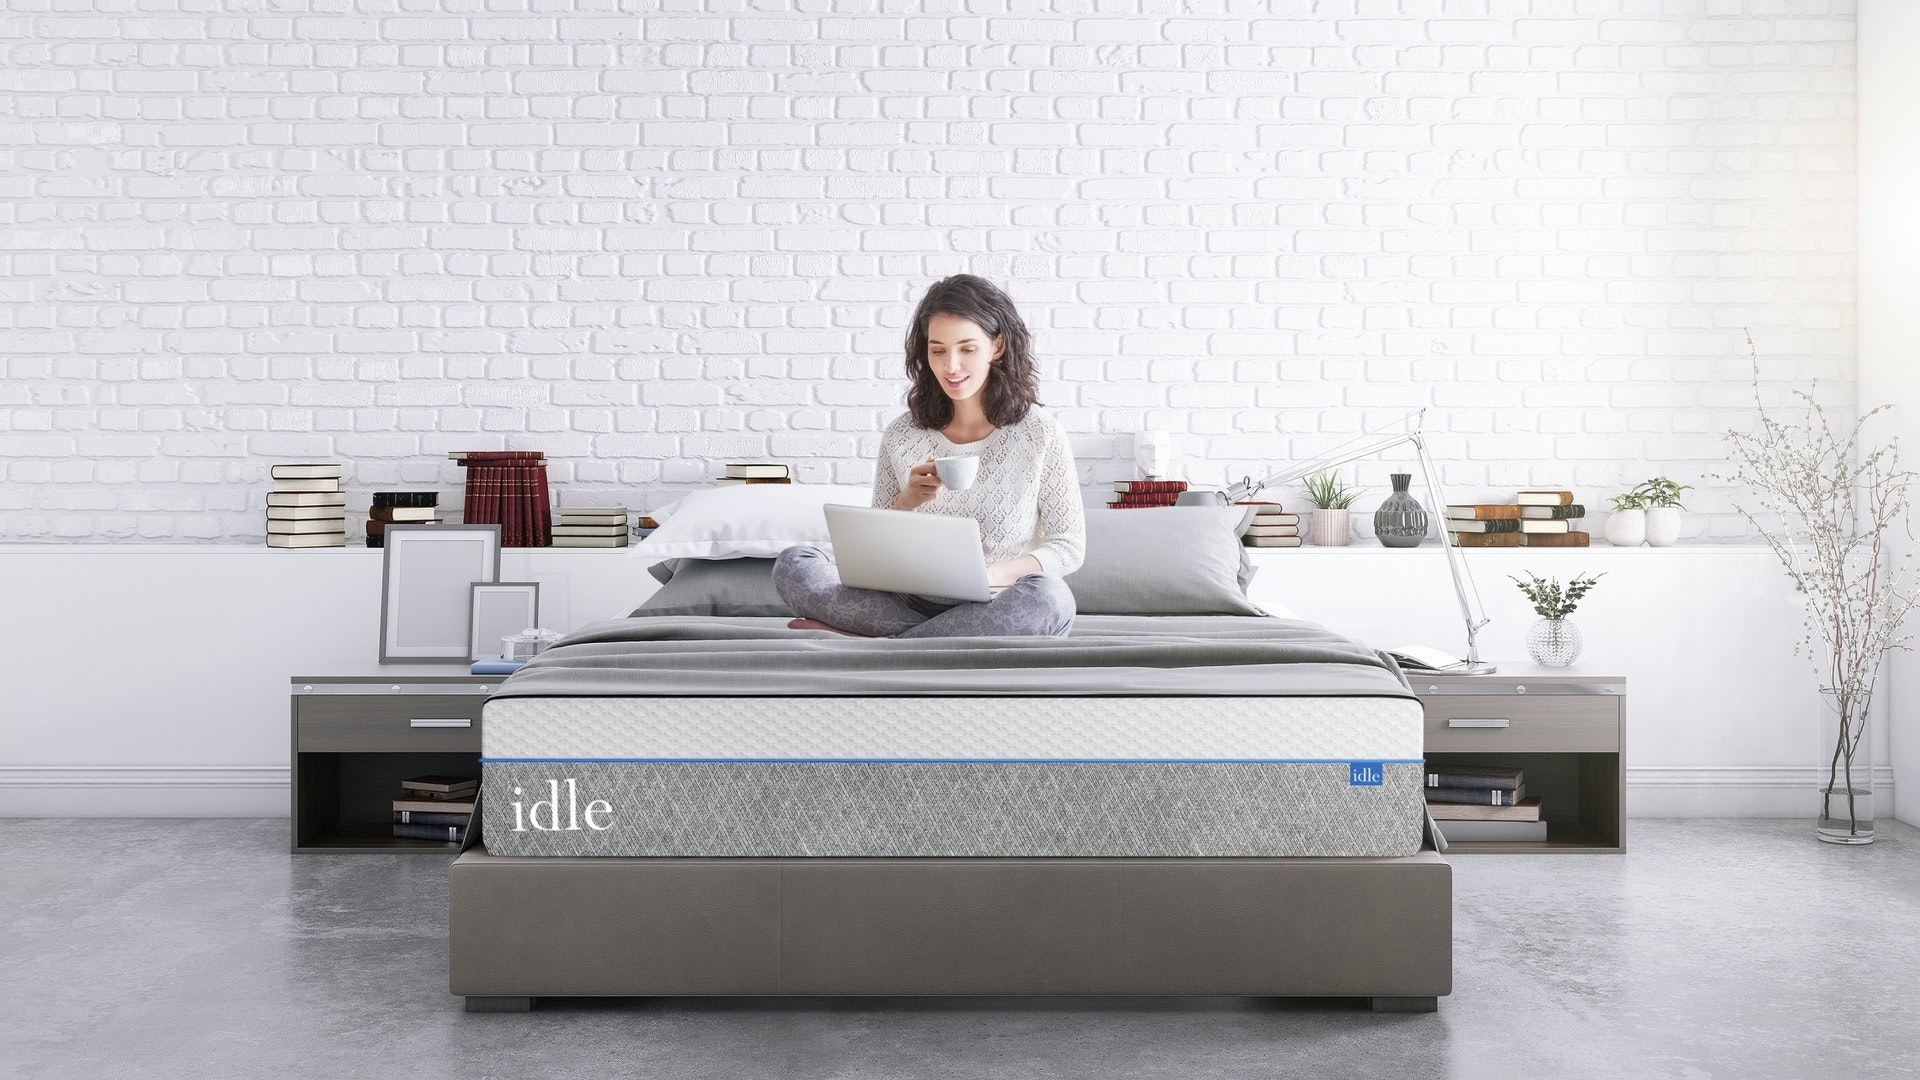 Model working on their laptop sitting on an Idle Sleep Plush mattress